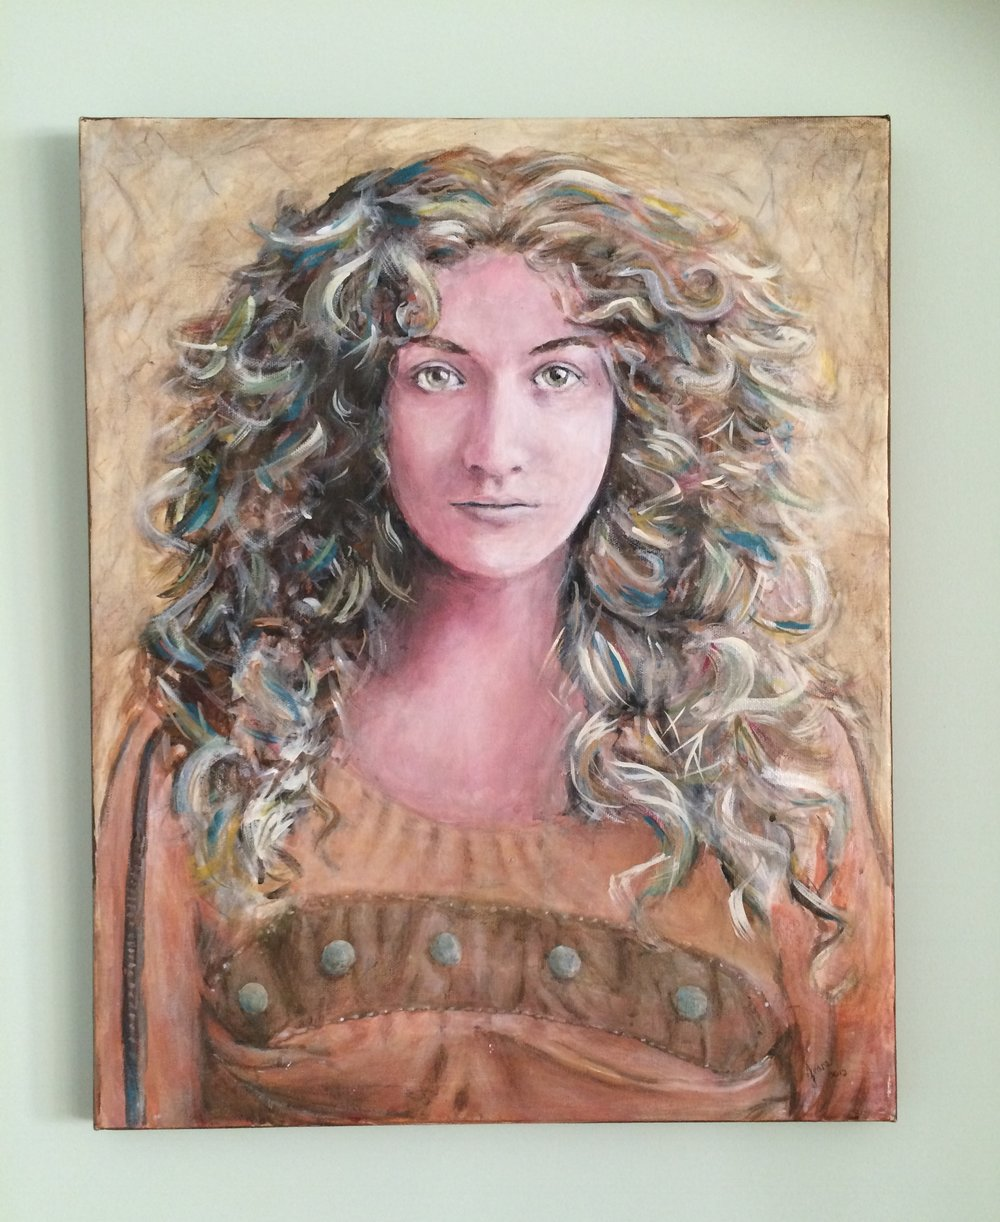 Her name is  Curls.  She's one of my favorite paintings.